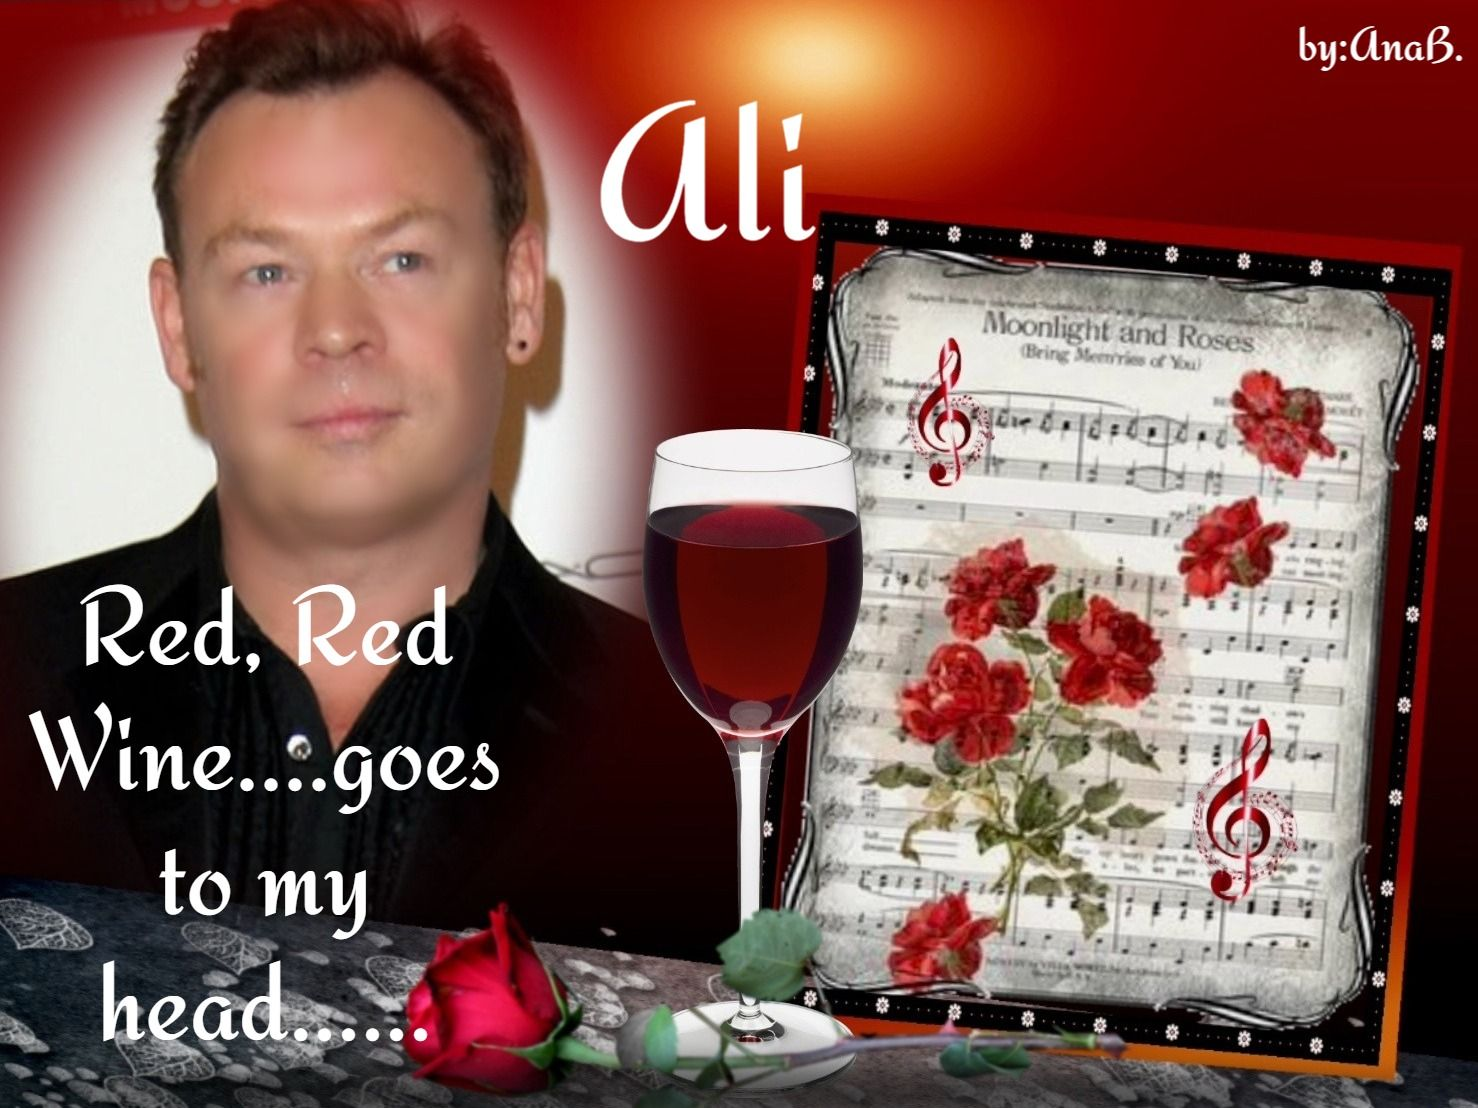 Pin On Ali Campbell Of Ub40